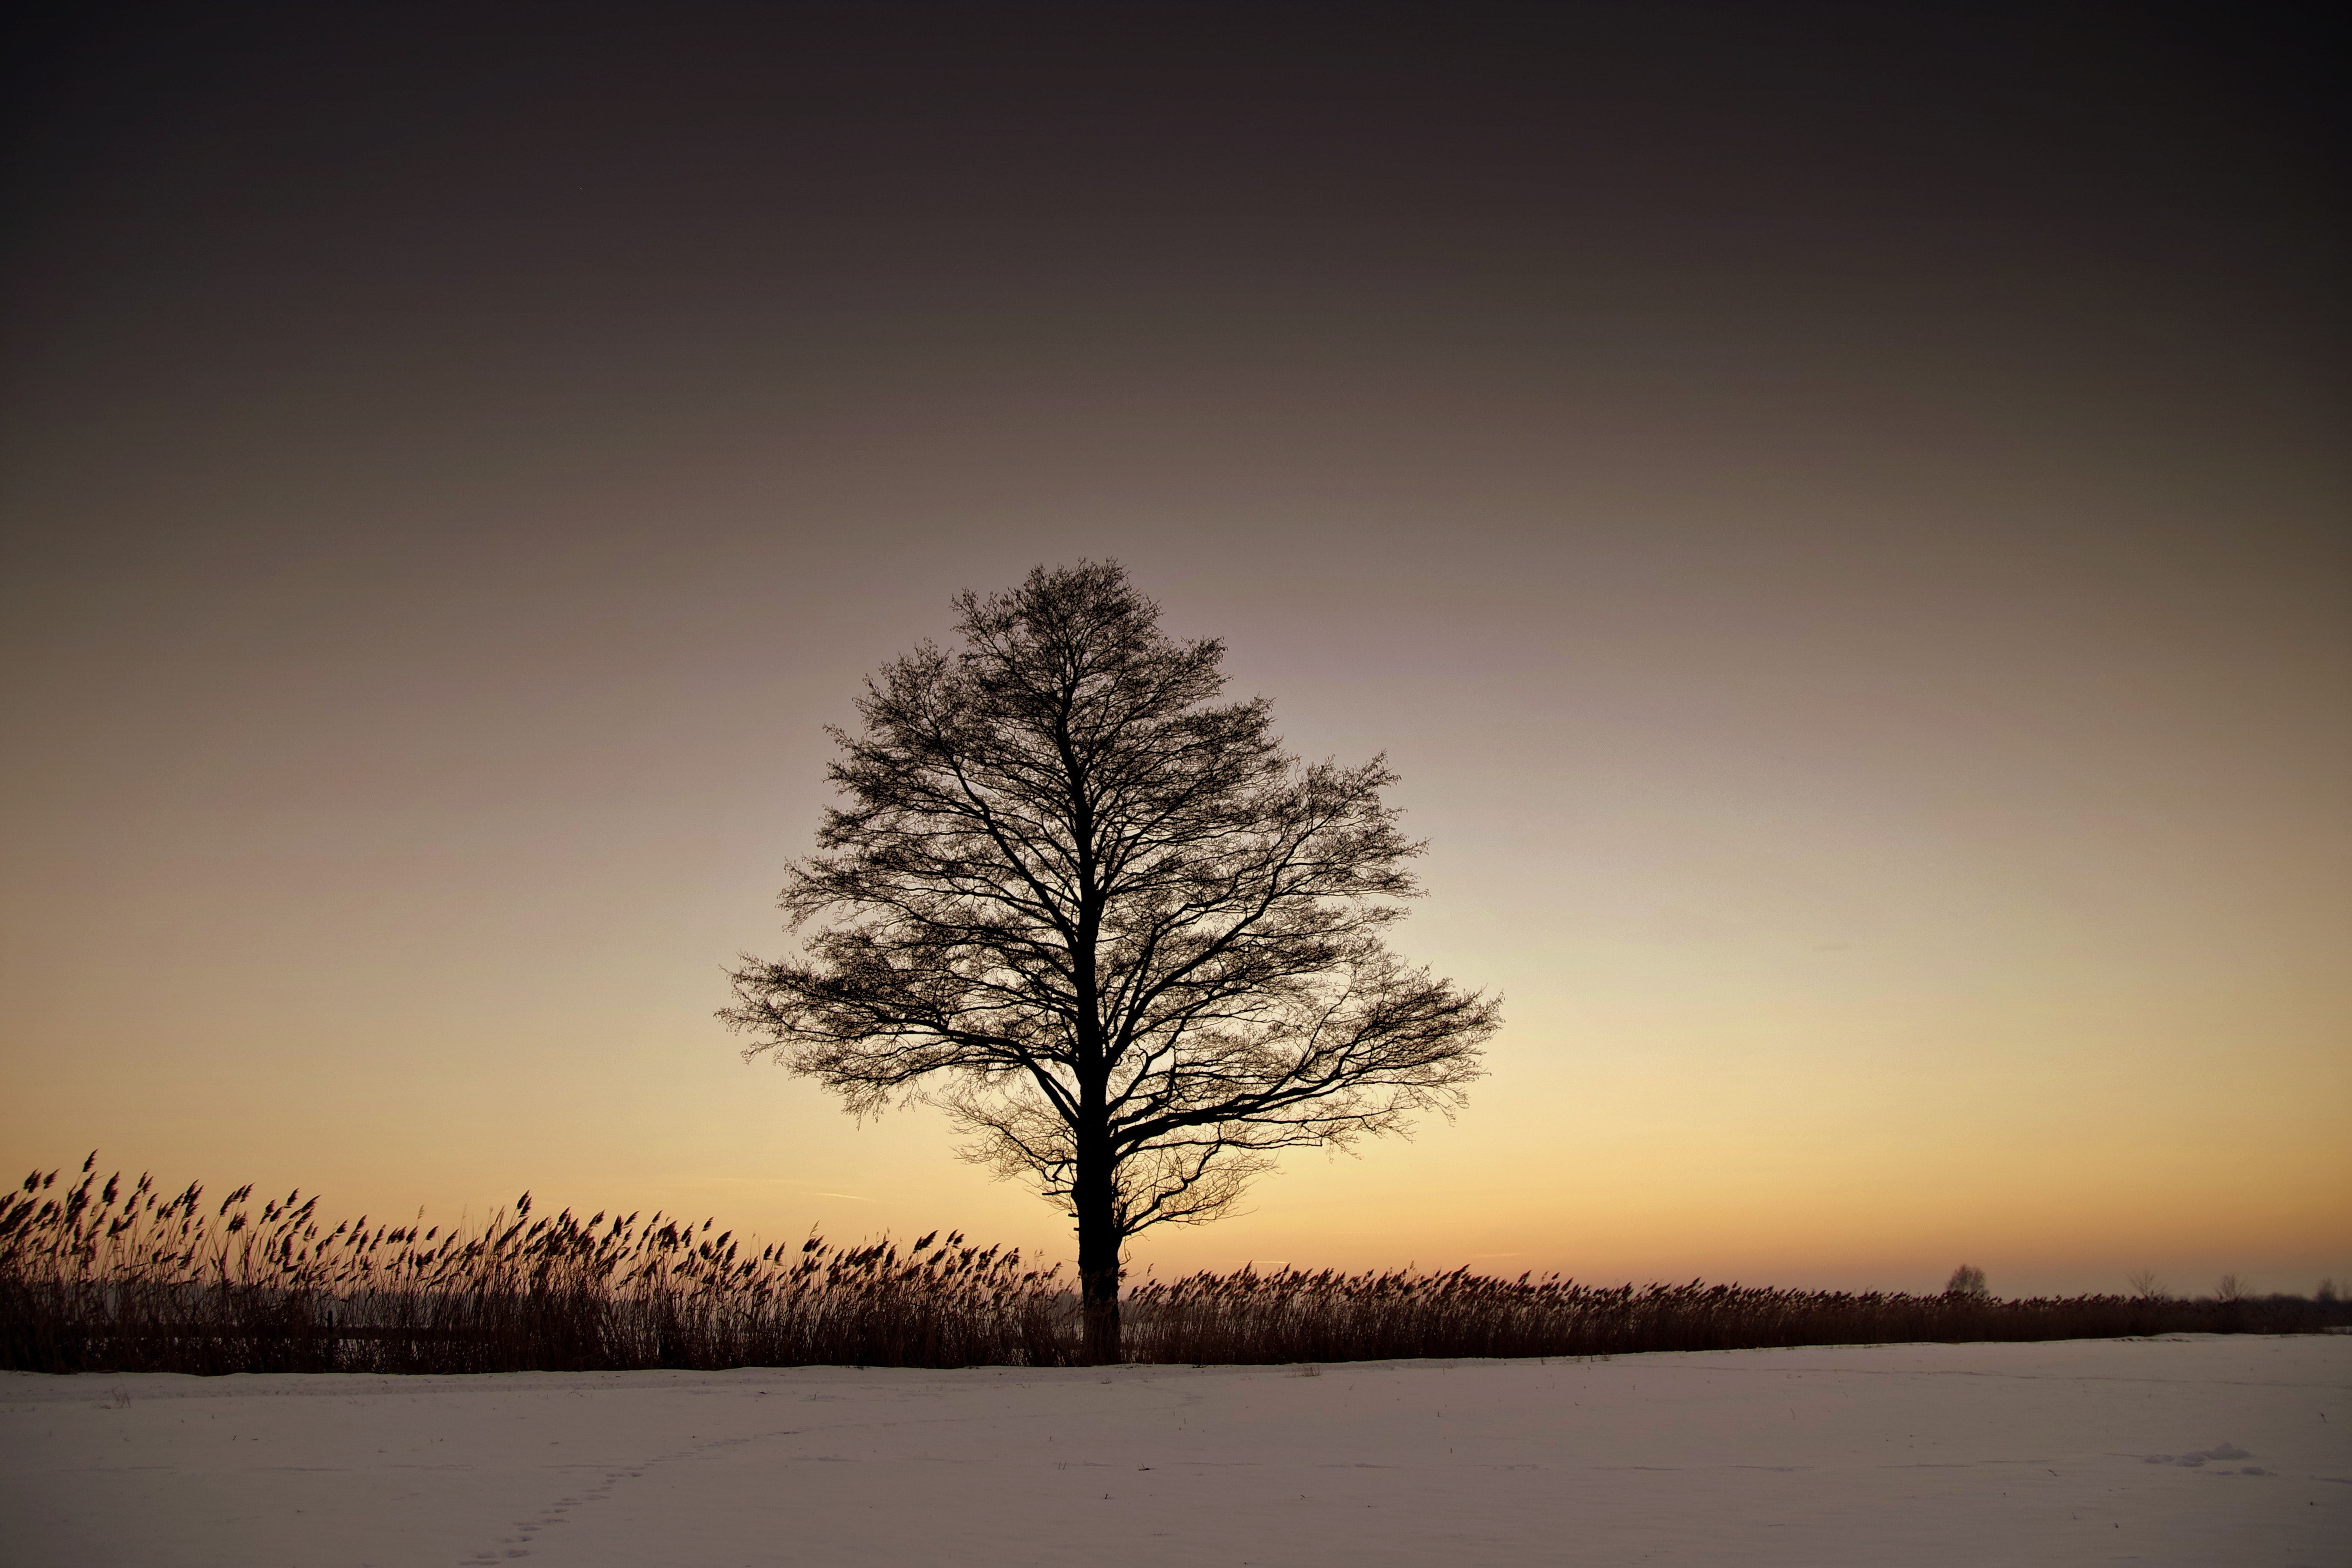 Silhouette Bare Tree on Landscape Against Sky during Sunset, Backlit, Outdoors, Twilight, Tree, HQ Photo